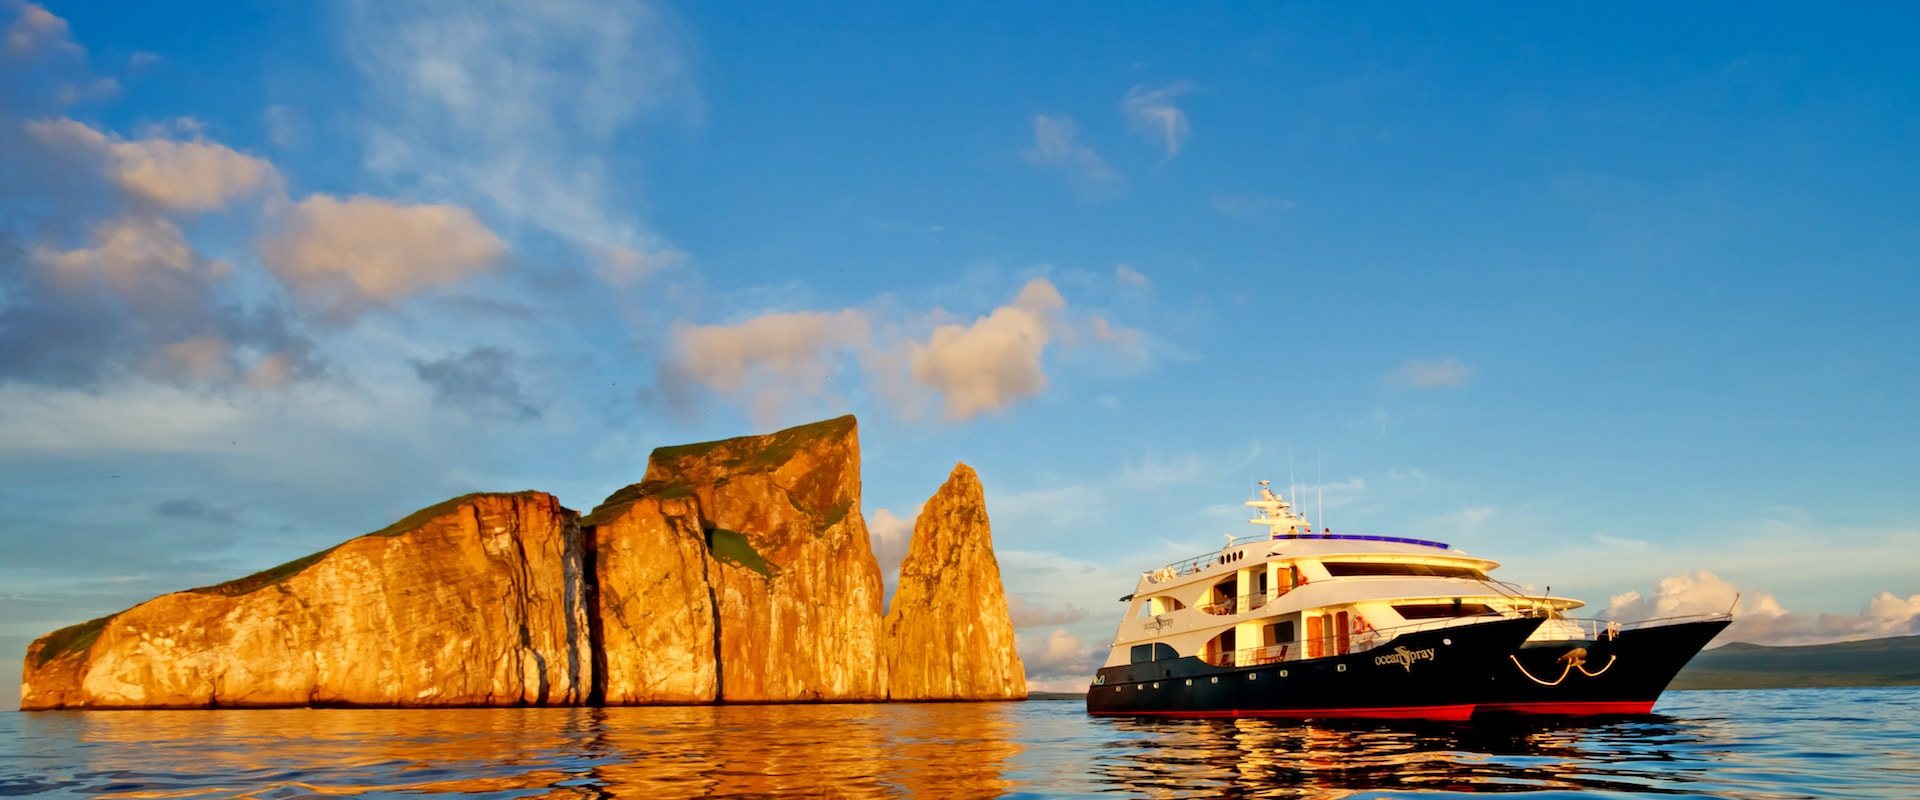 Espanola Island Adventure Cruises